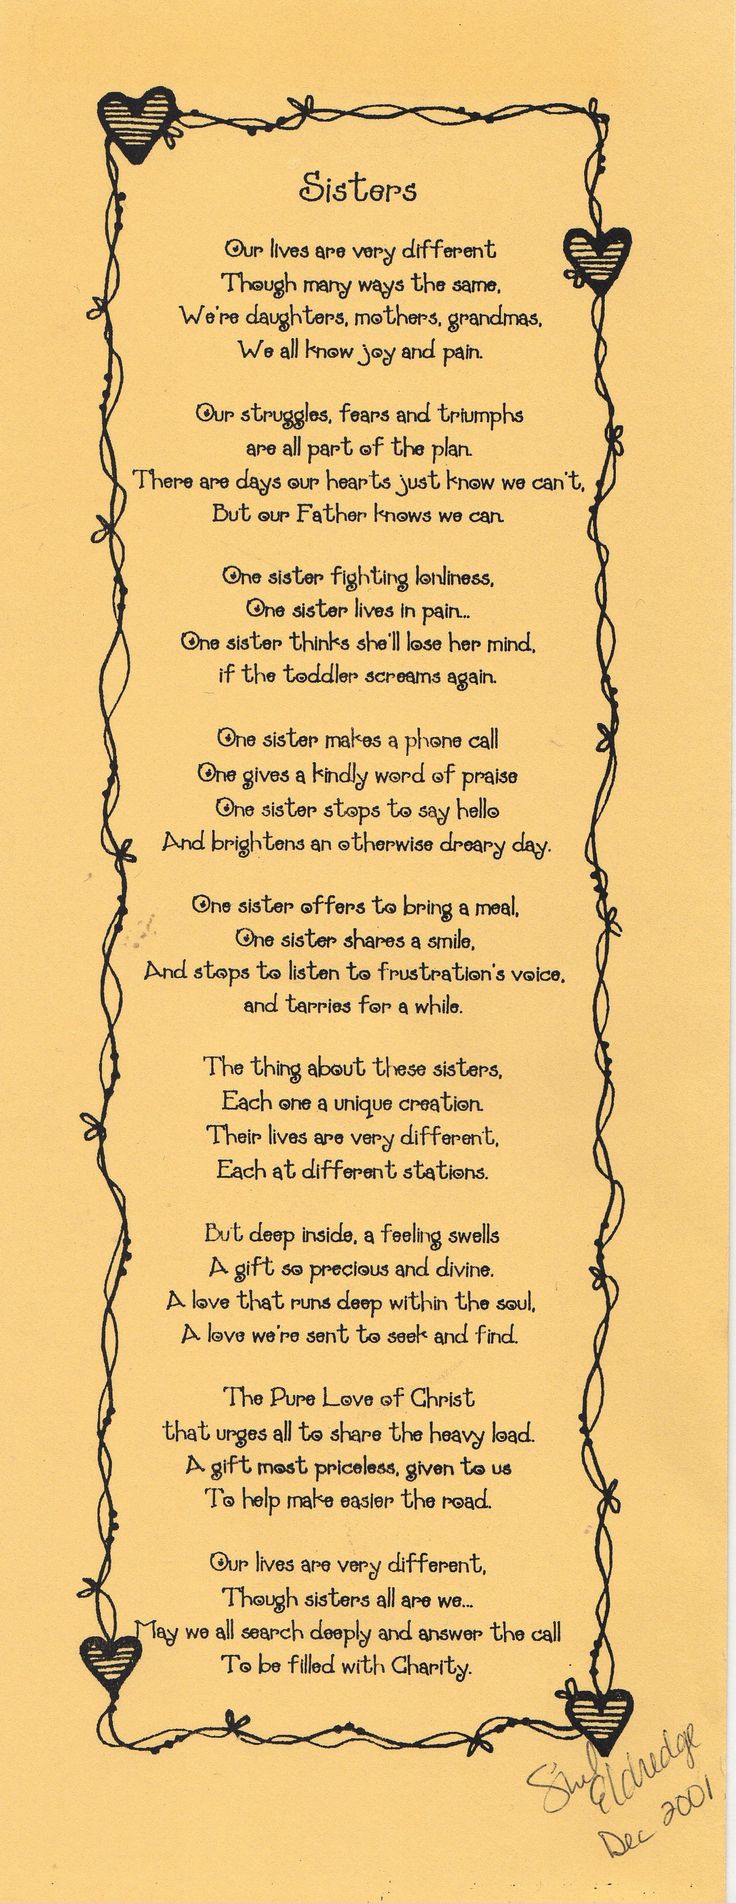 Good poem for Relief Society activity about serving eachother.